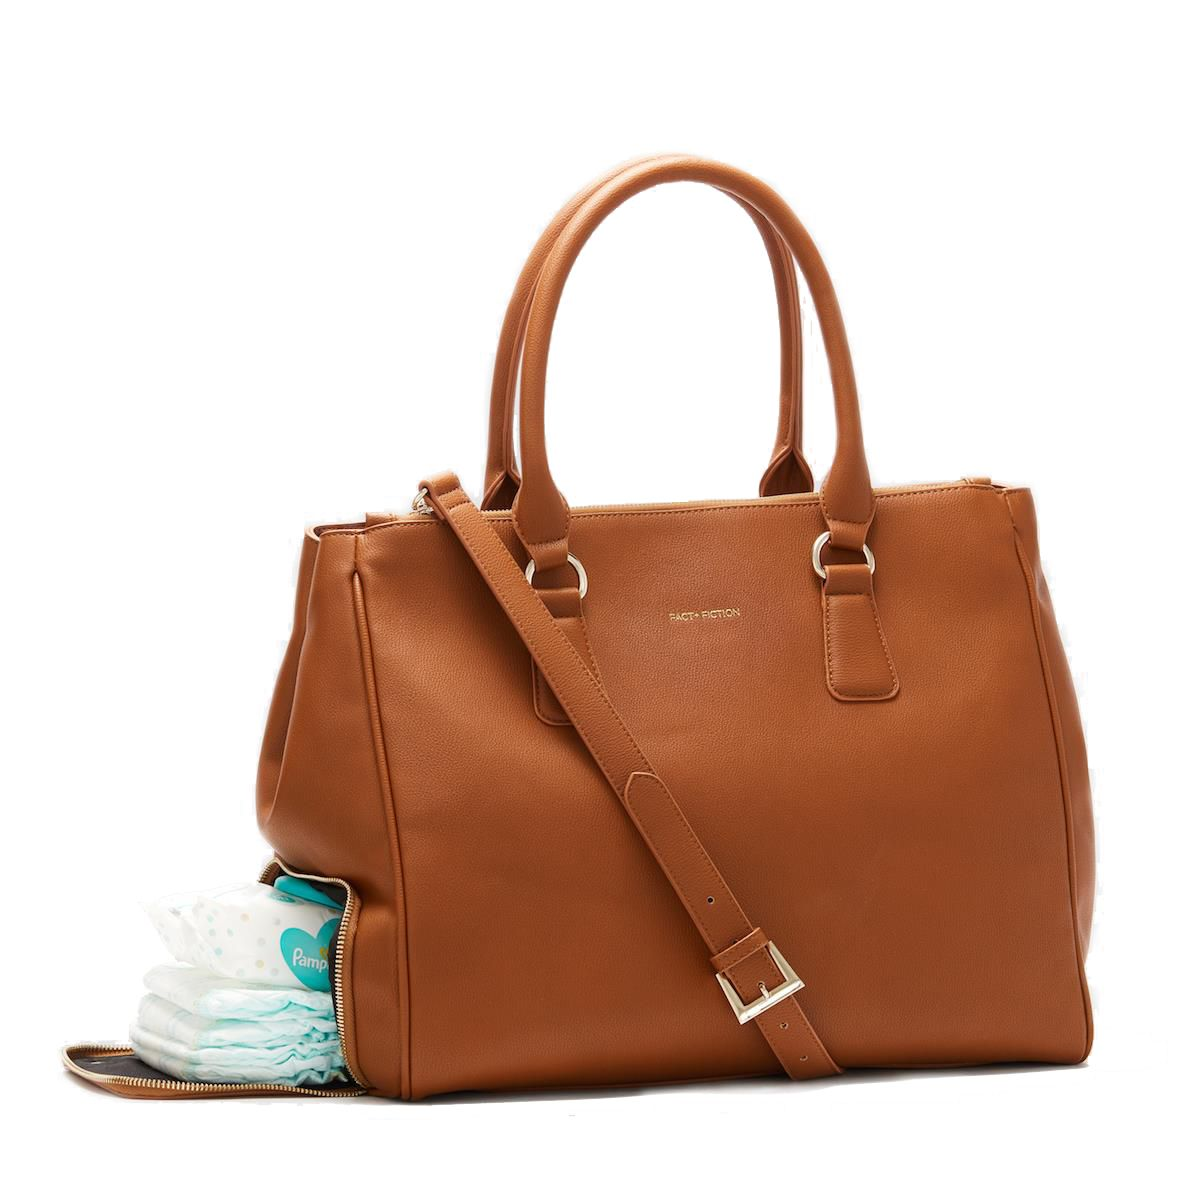 582f35113 Fact + Fiction Sophia Tote Tan, £135. The ultimate stylish, functional baby  bag. 10% off on the site now when you sign up to the newsletter #babybag ...